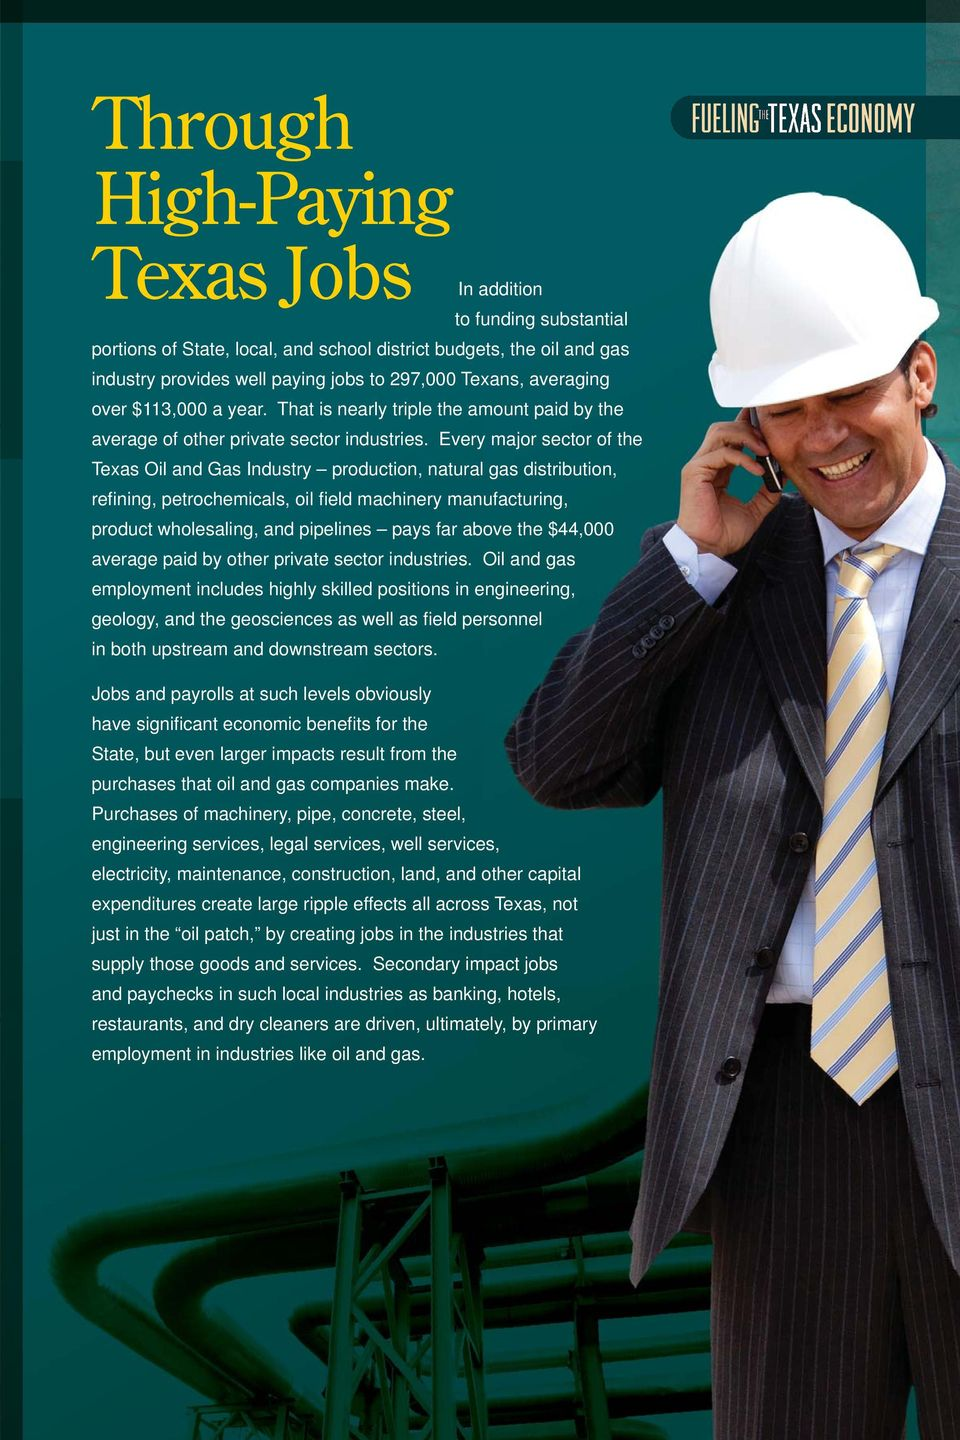 Every major sector of the Texas Oil and Gas Industry production, natural gas distribution, refi ning, petrochemicals, oil fi eld machinery manufacturing, product wholesaling, and pipelines pays far